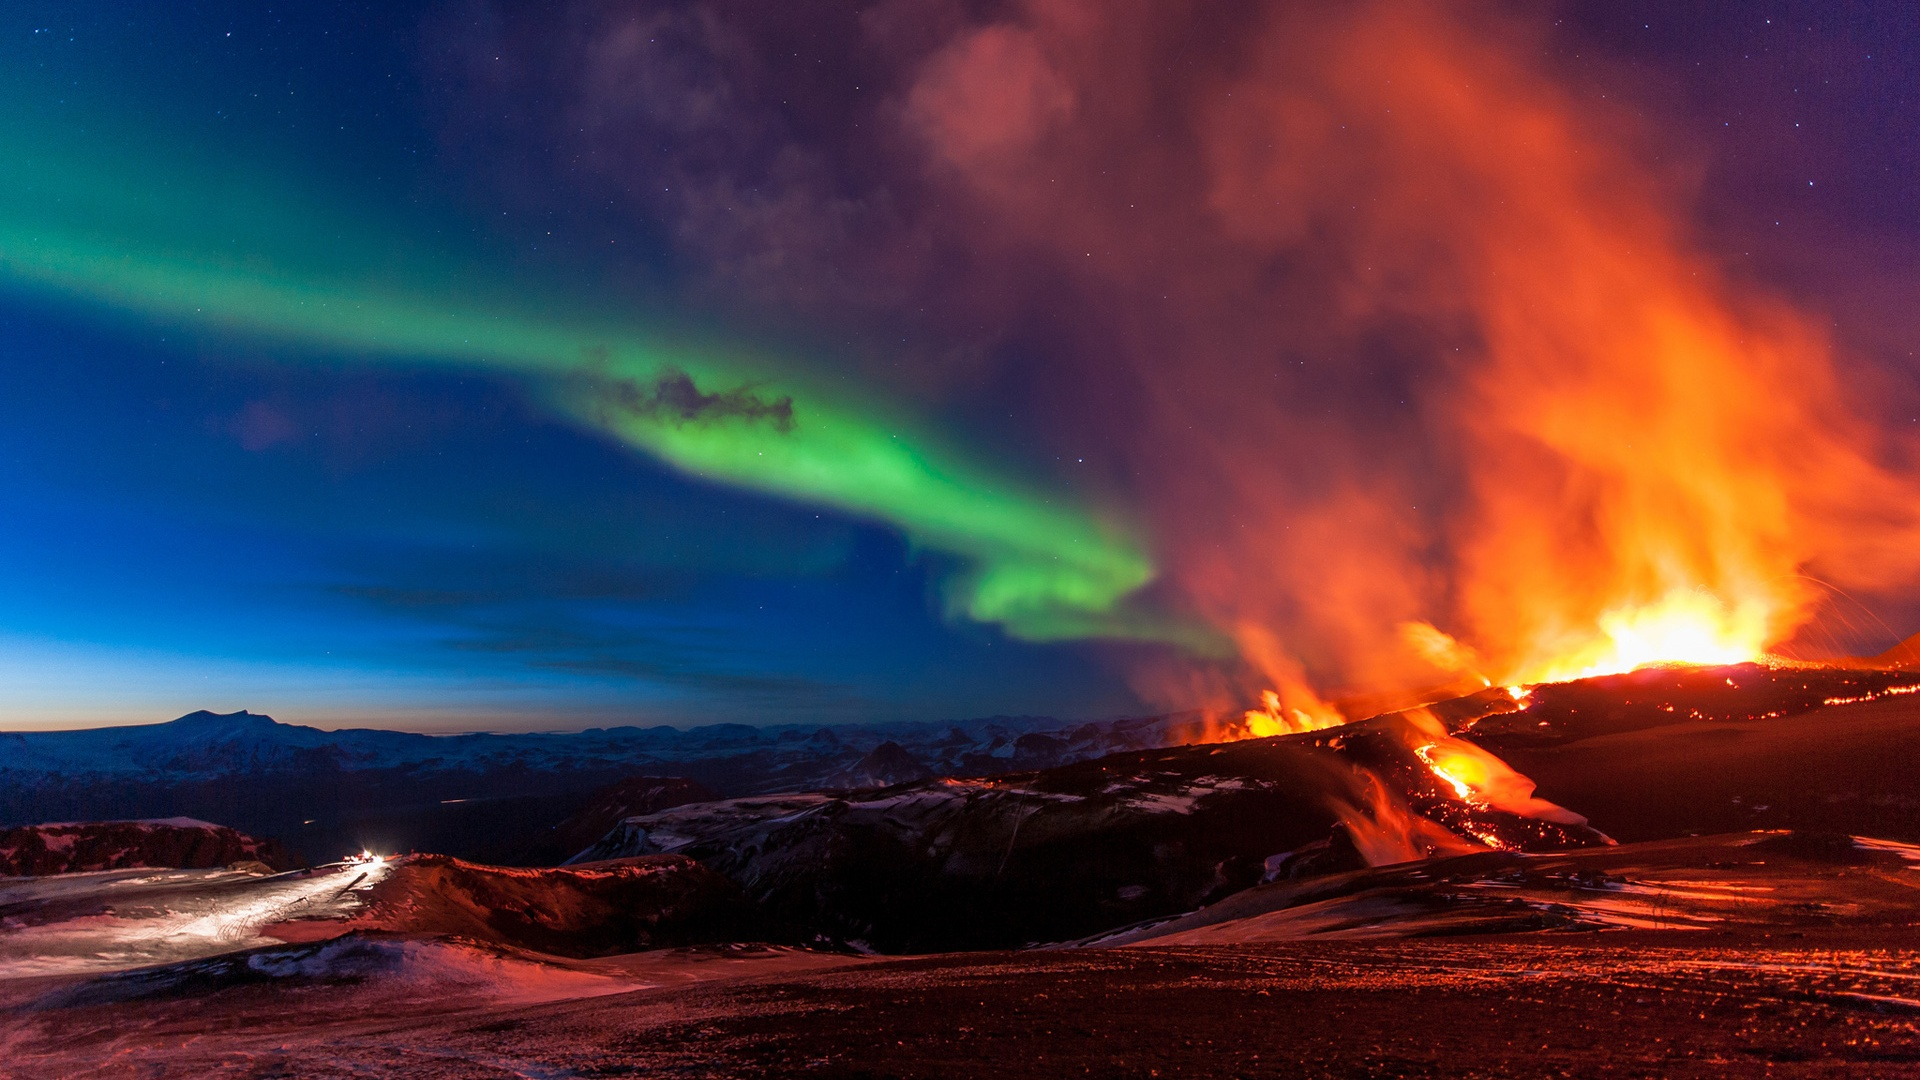 Fimmvorduhals-Iceland-mountains-volcanic-eruption-northern-lights_1920x1080.jpg